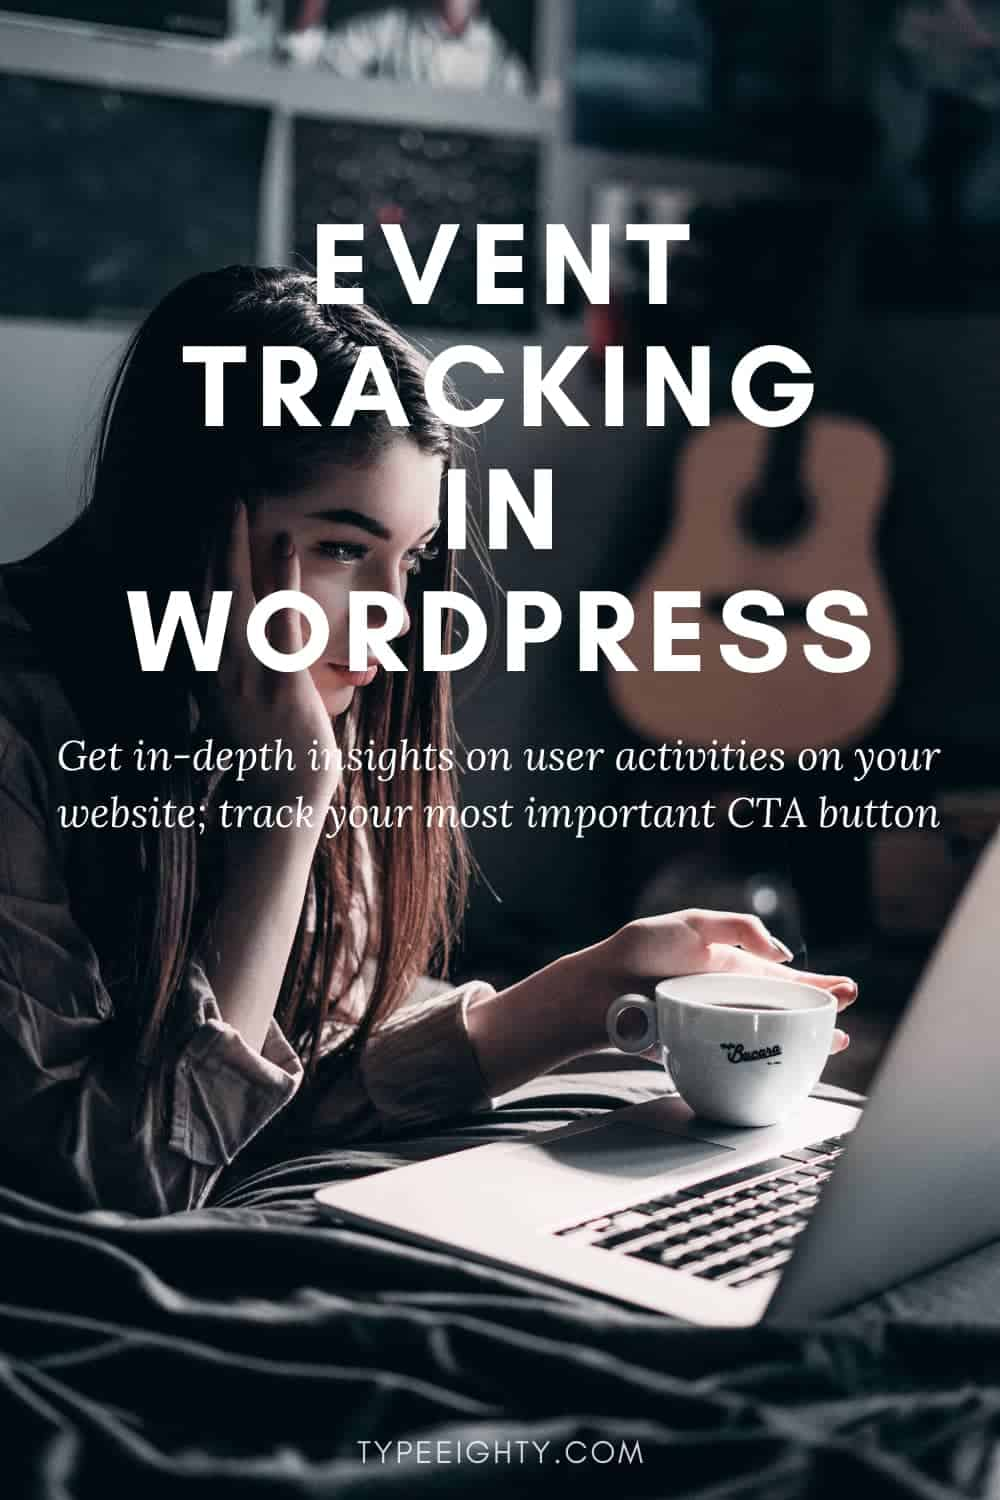 How to Add Google Analytics Event Tracking in WordPress?